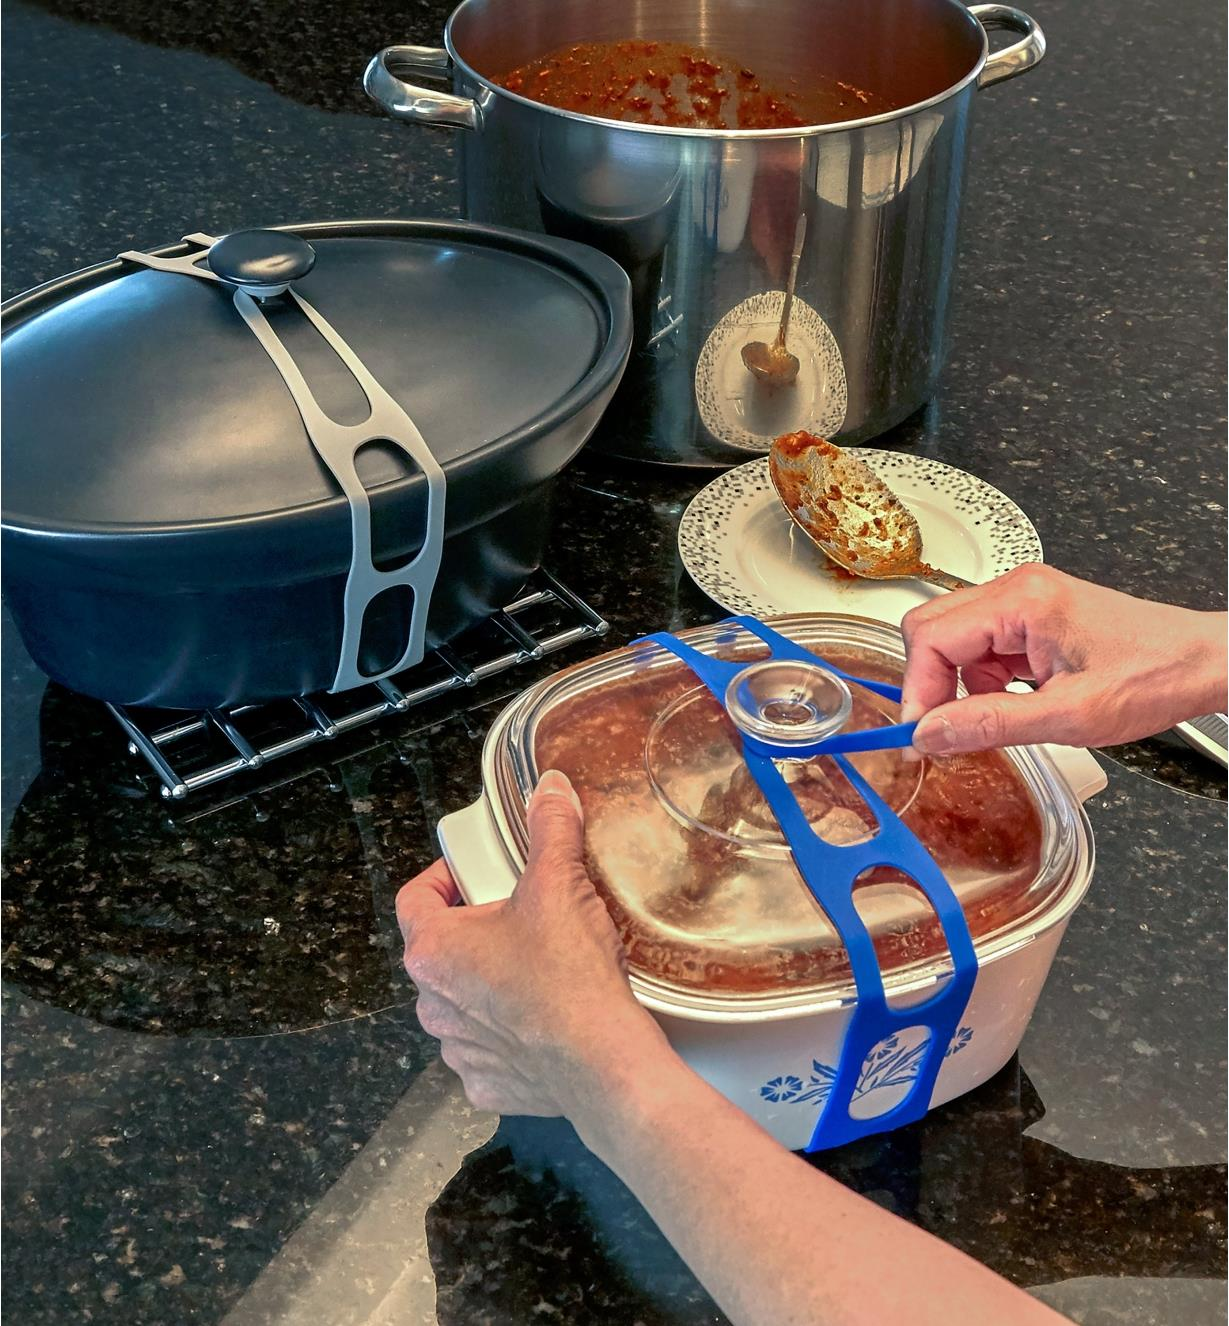 Applying the lid latch to a casserole dish, with another pot held closed using a lid latch in the background